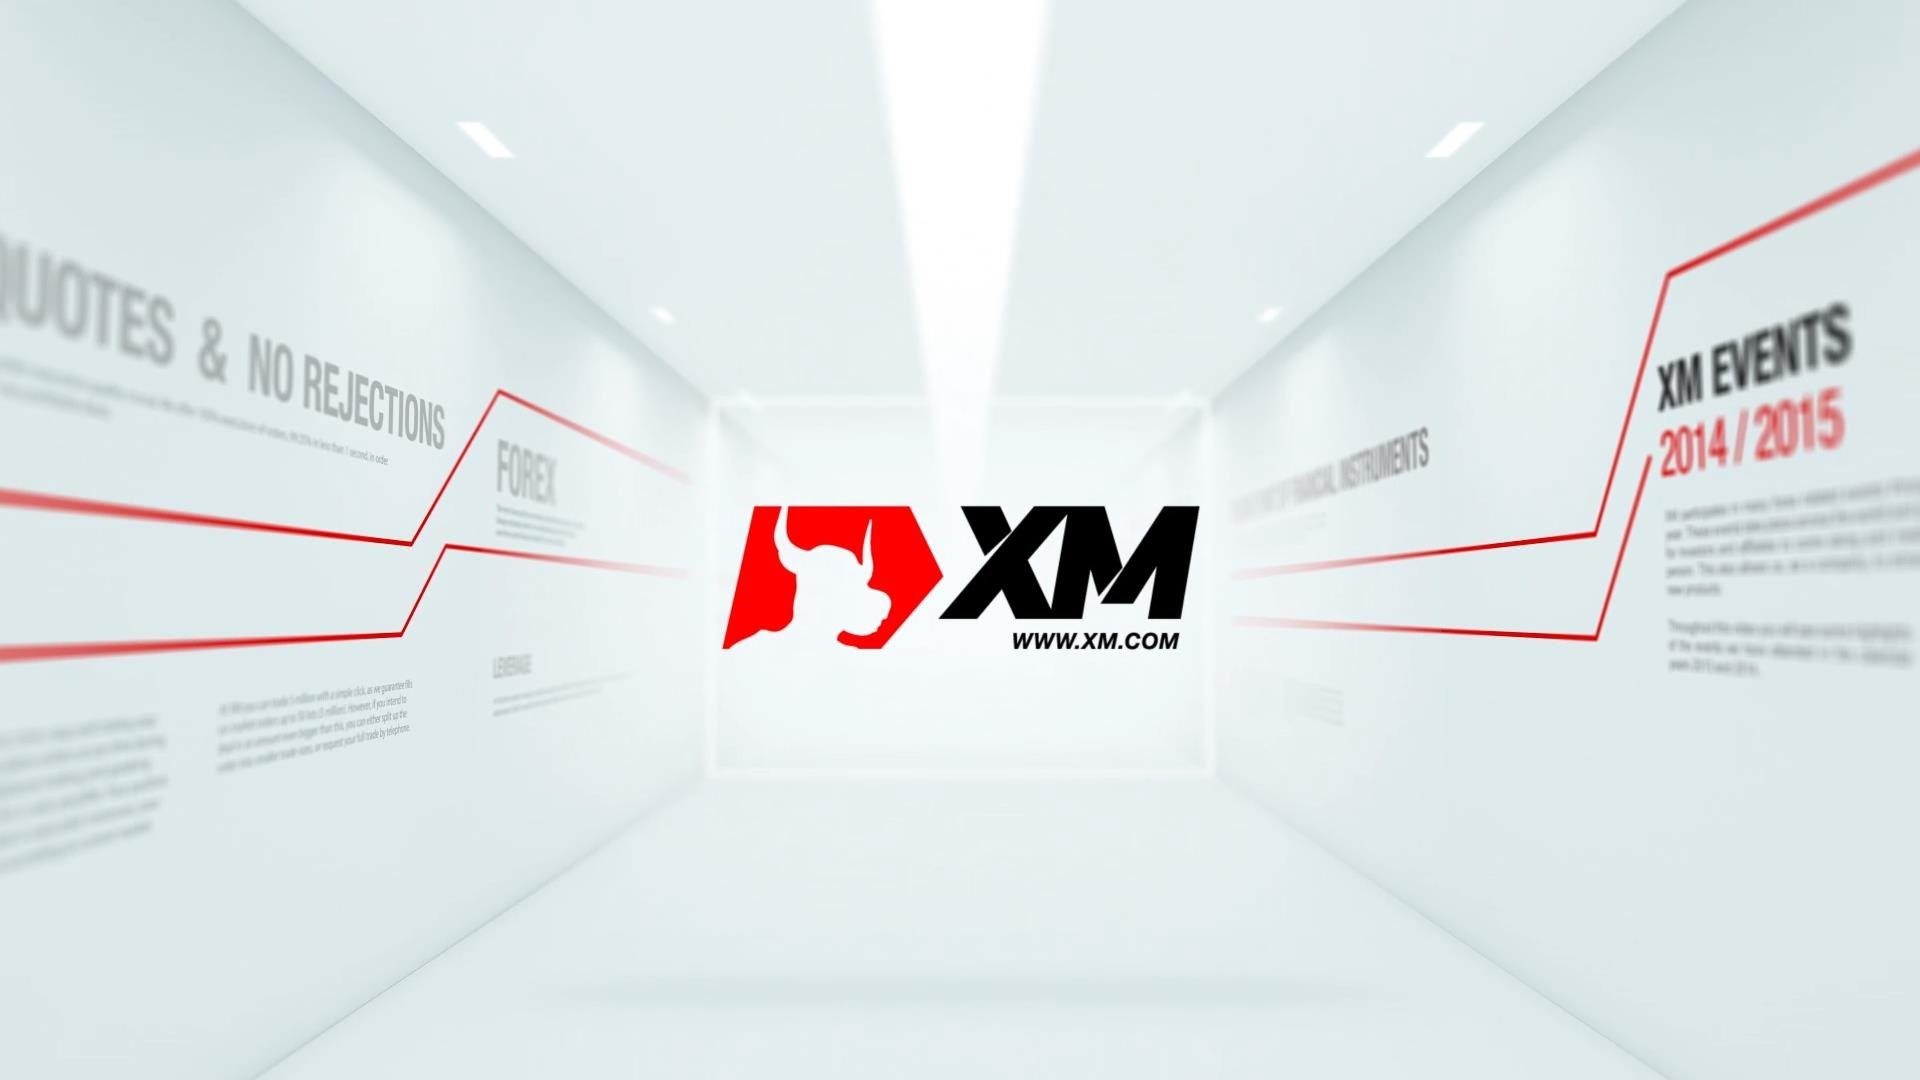 What You Need to Know About XM.com